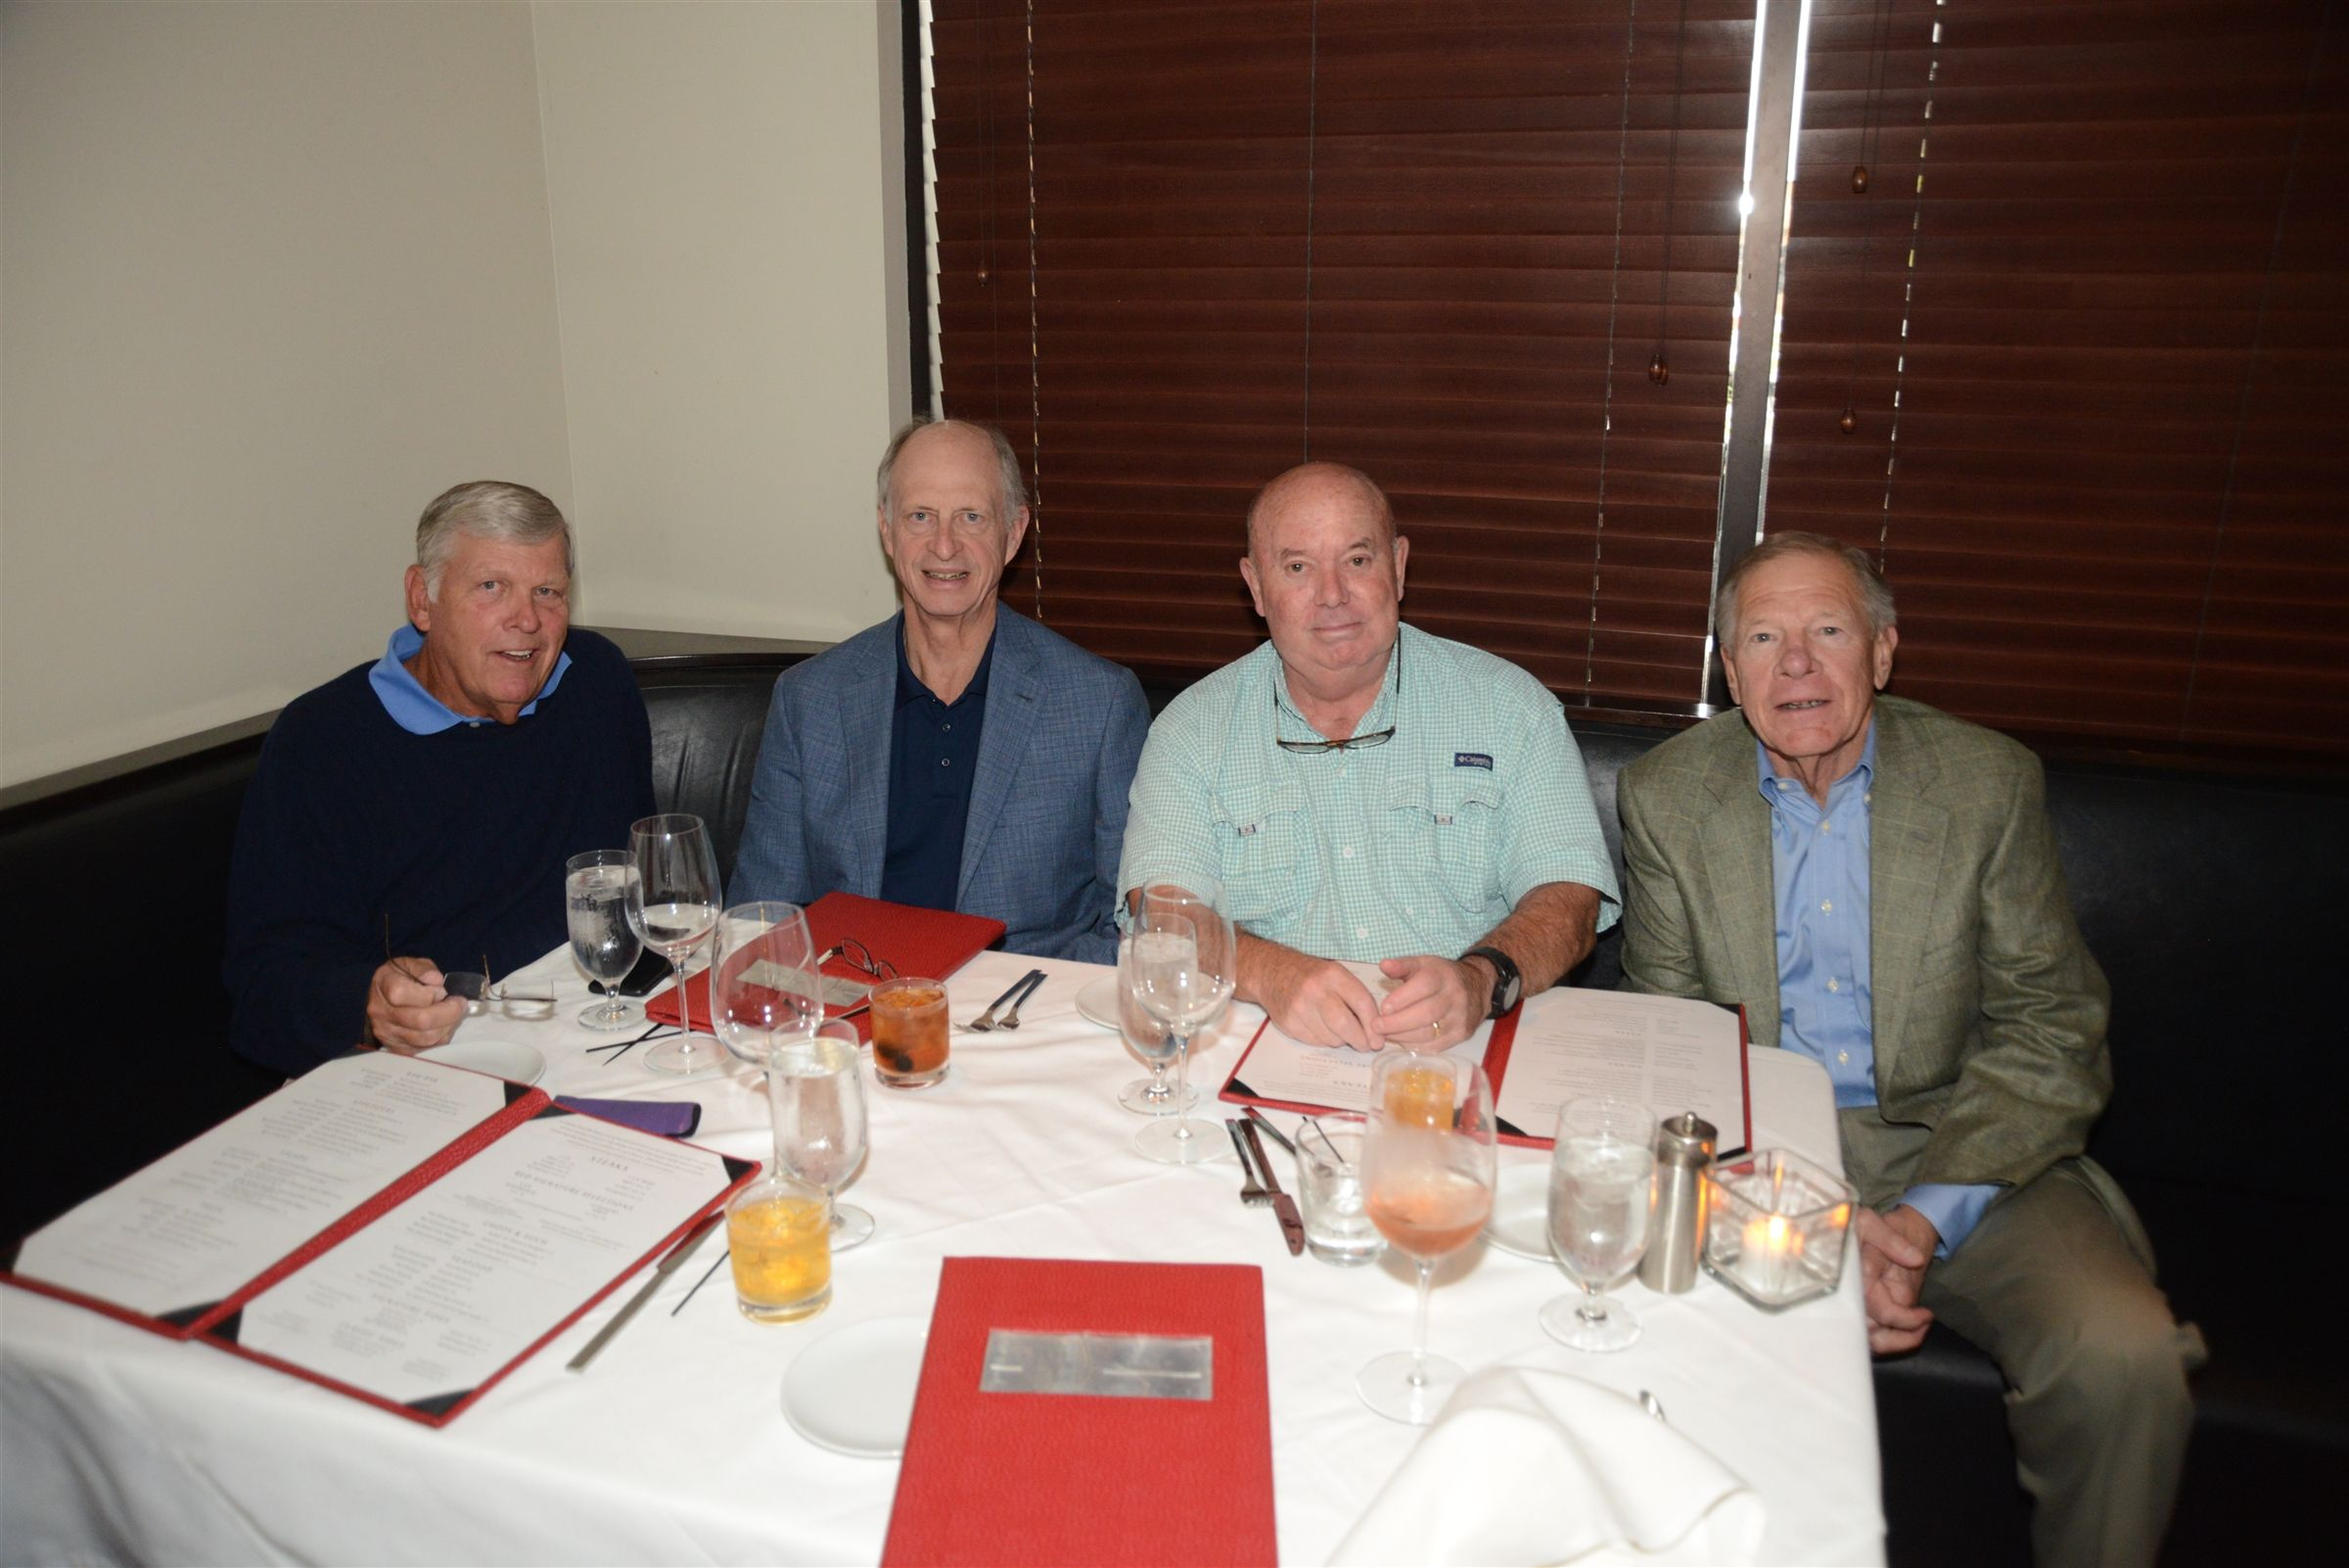 Members from the Class of '64 Bill Calfee, Jim Griswold, Jon Stites, and Frank Porter had dinner at RED on Friday night of Alumni Weekend.